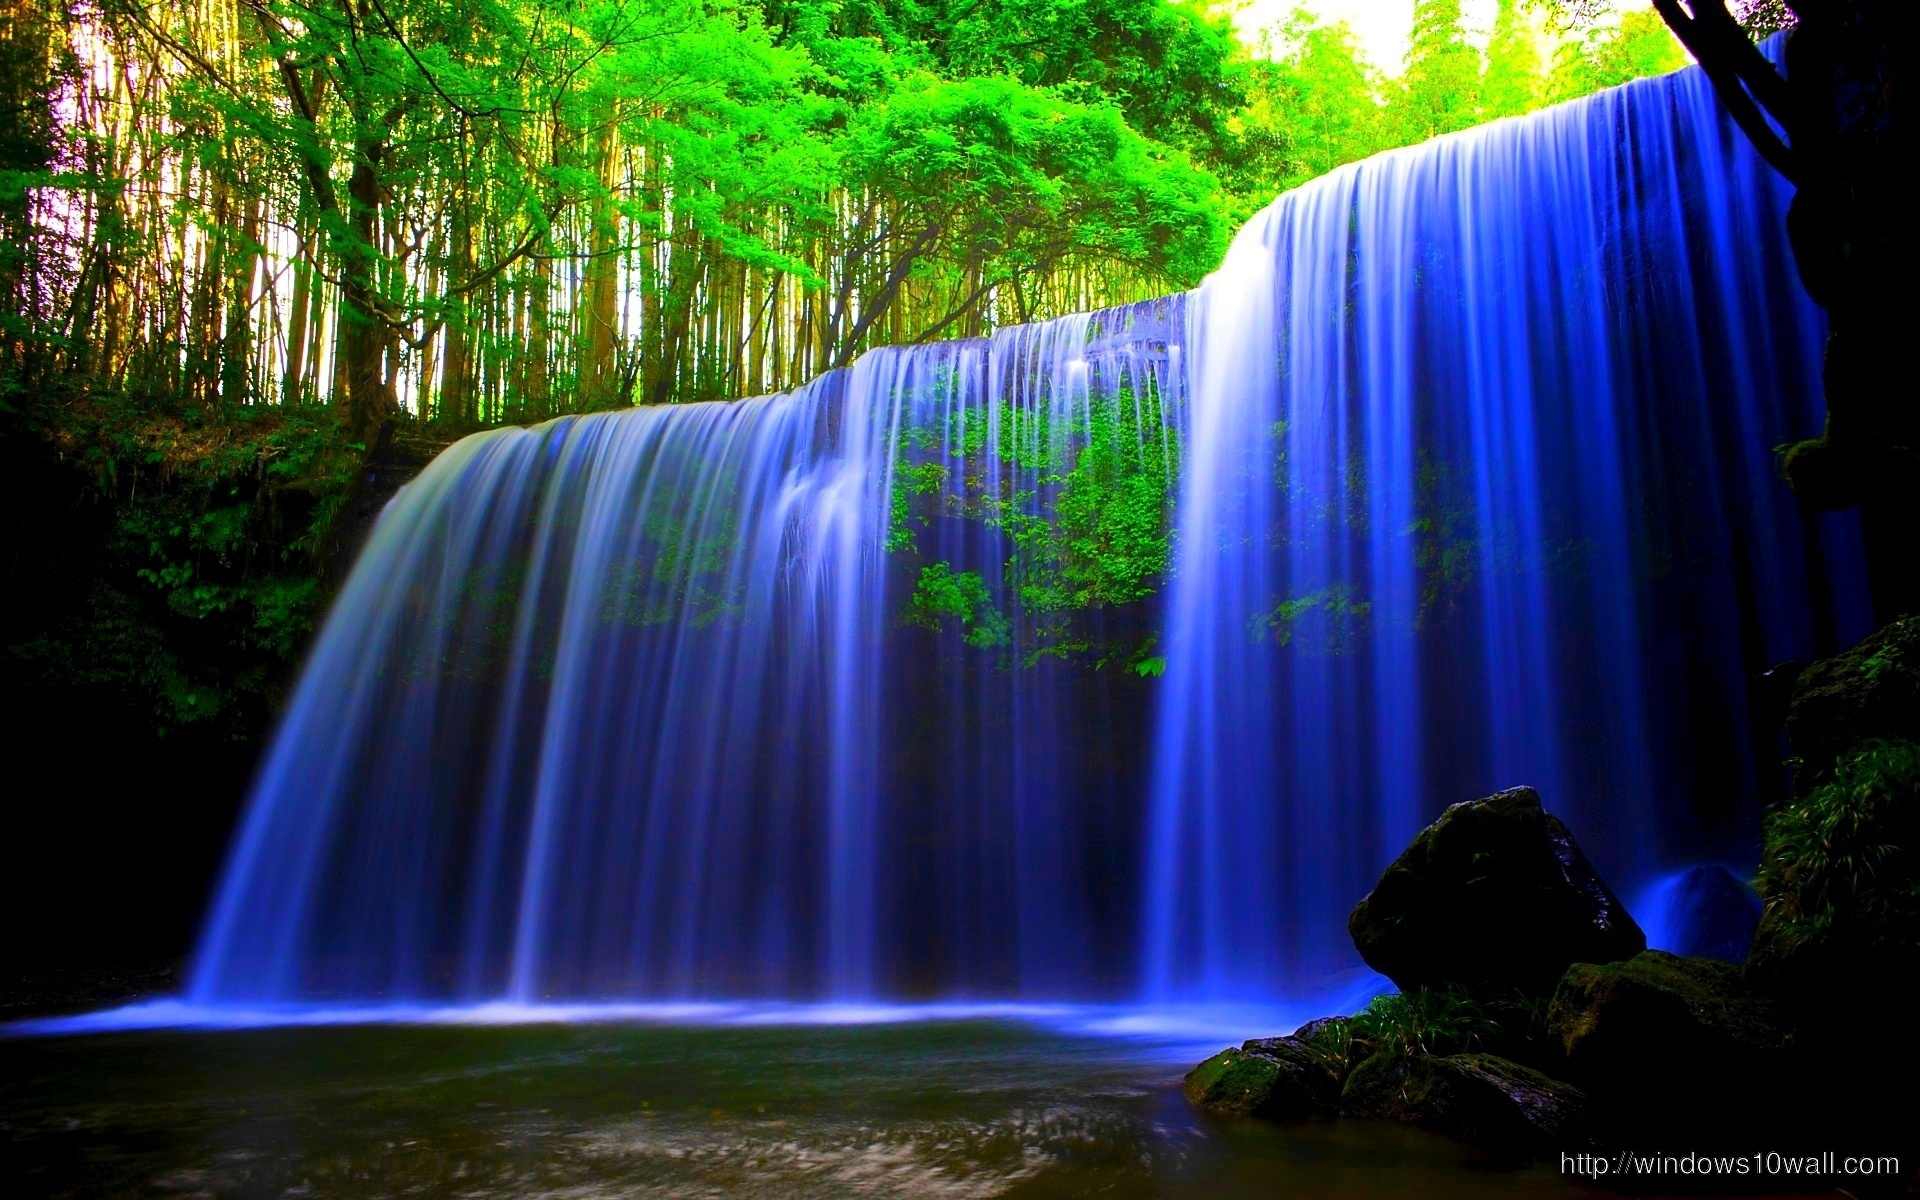 Waterfall windows 10 wallpapers for Waterfall it